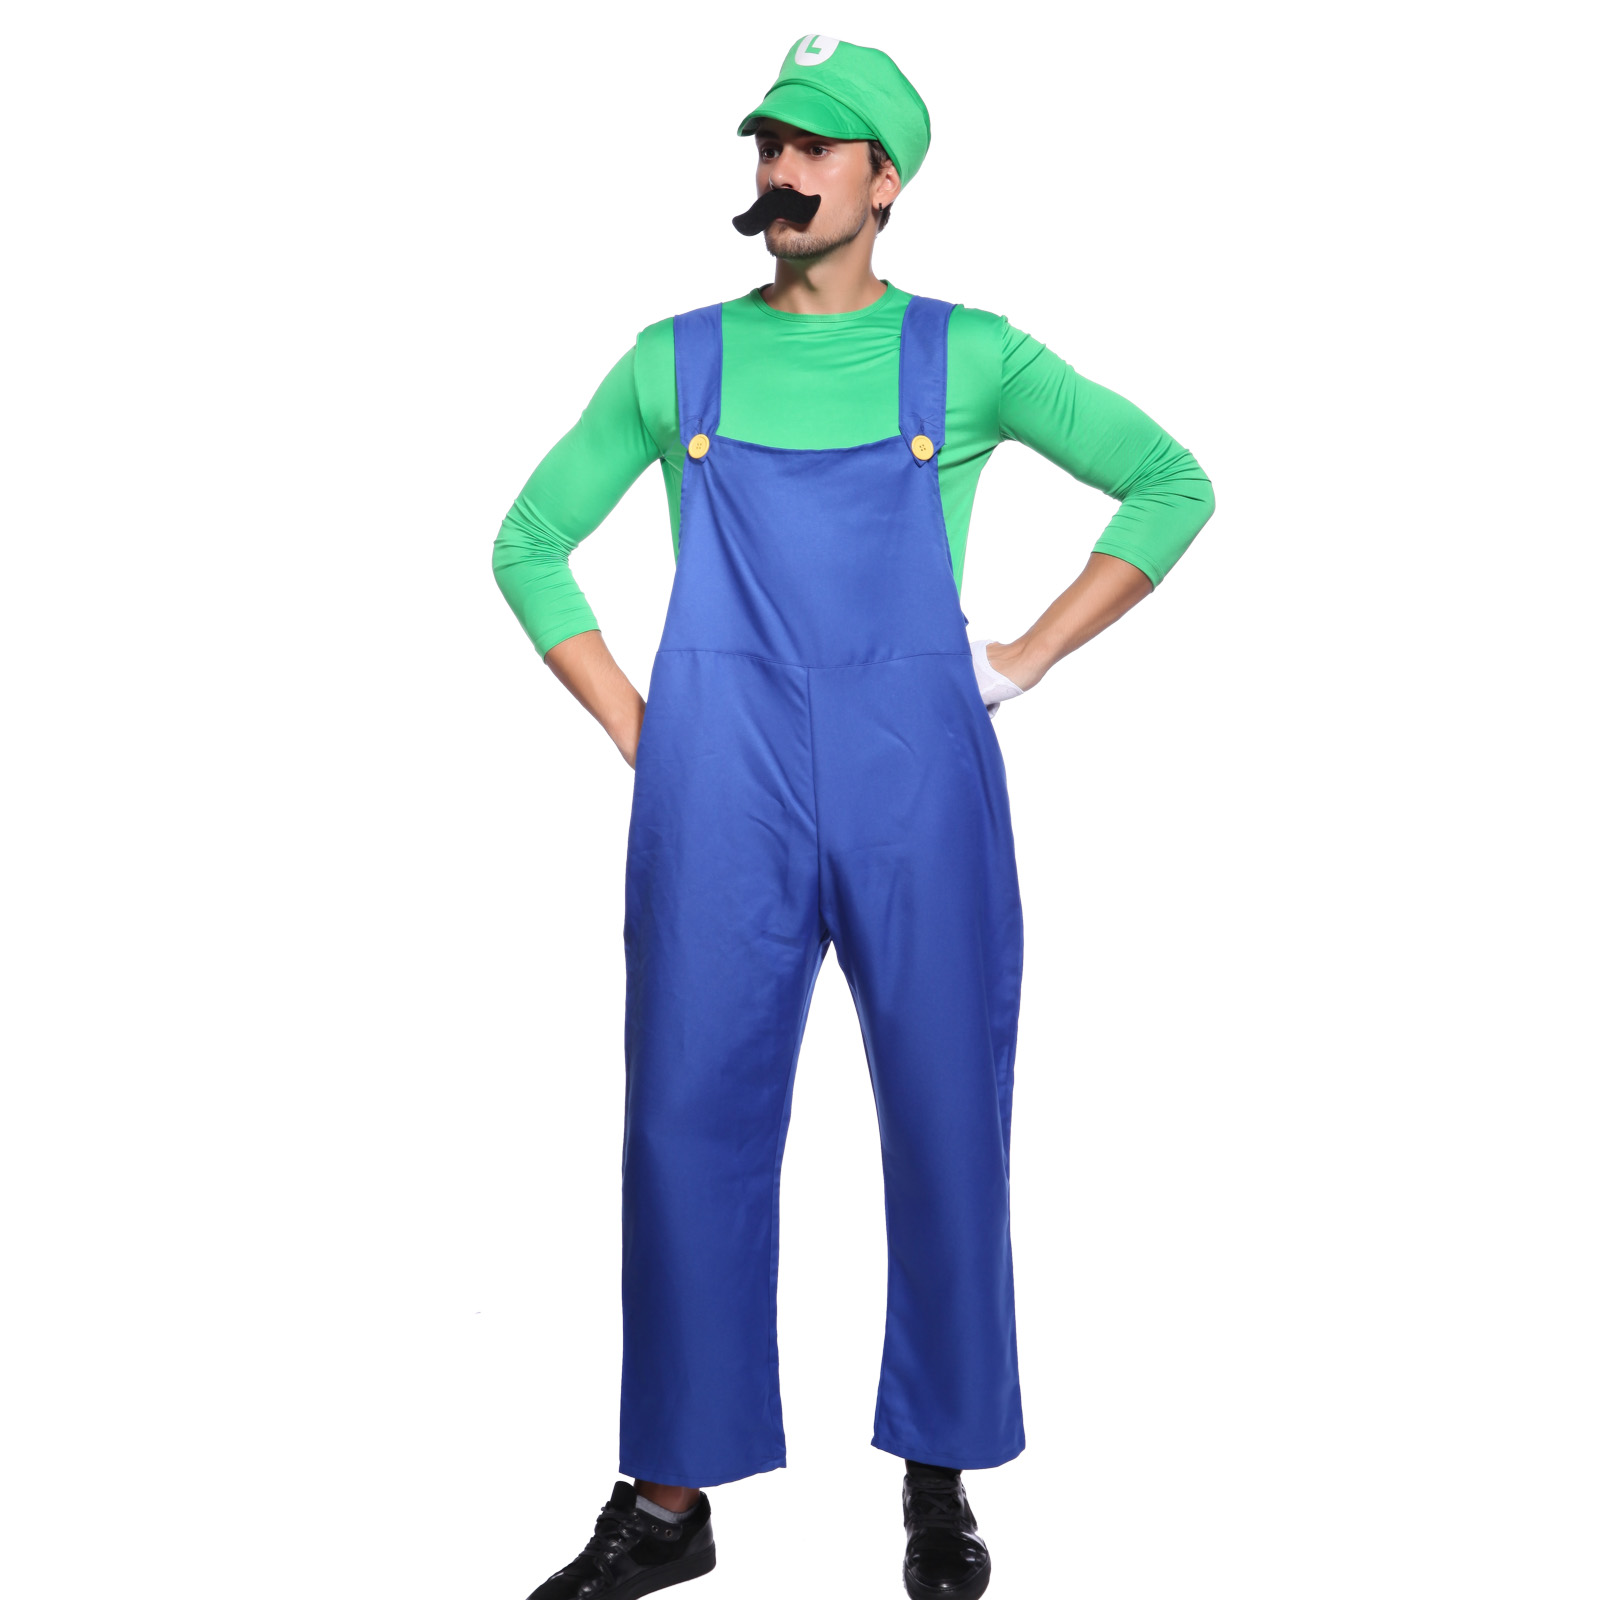 super mario bros mario luigi klempner herren kost m oder bierbauch f r karneval ebay. Black Bedroom Furniture Sets. Home Design Ideas